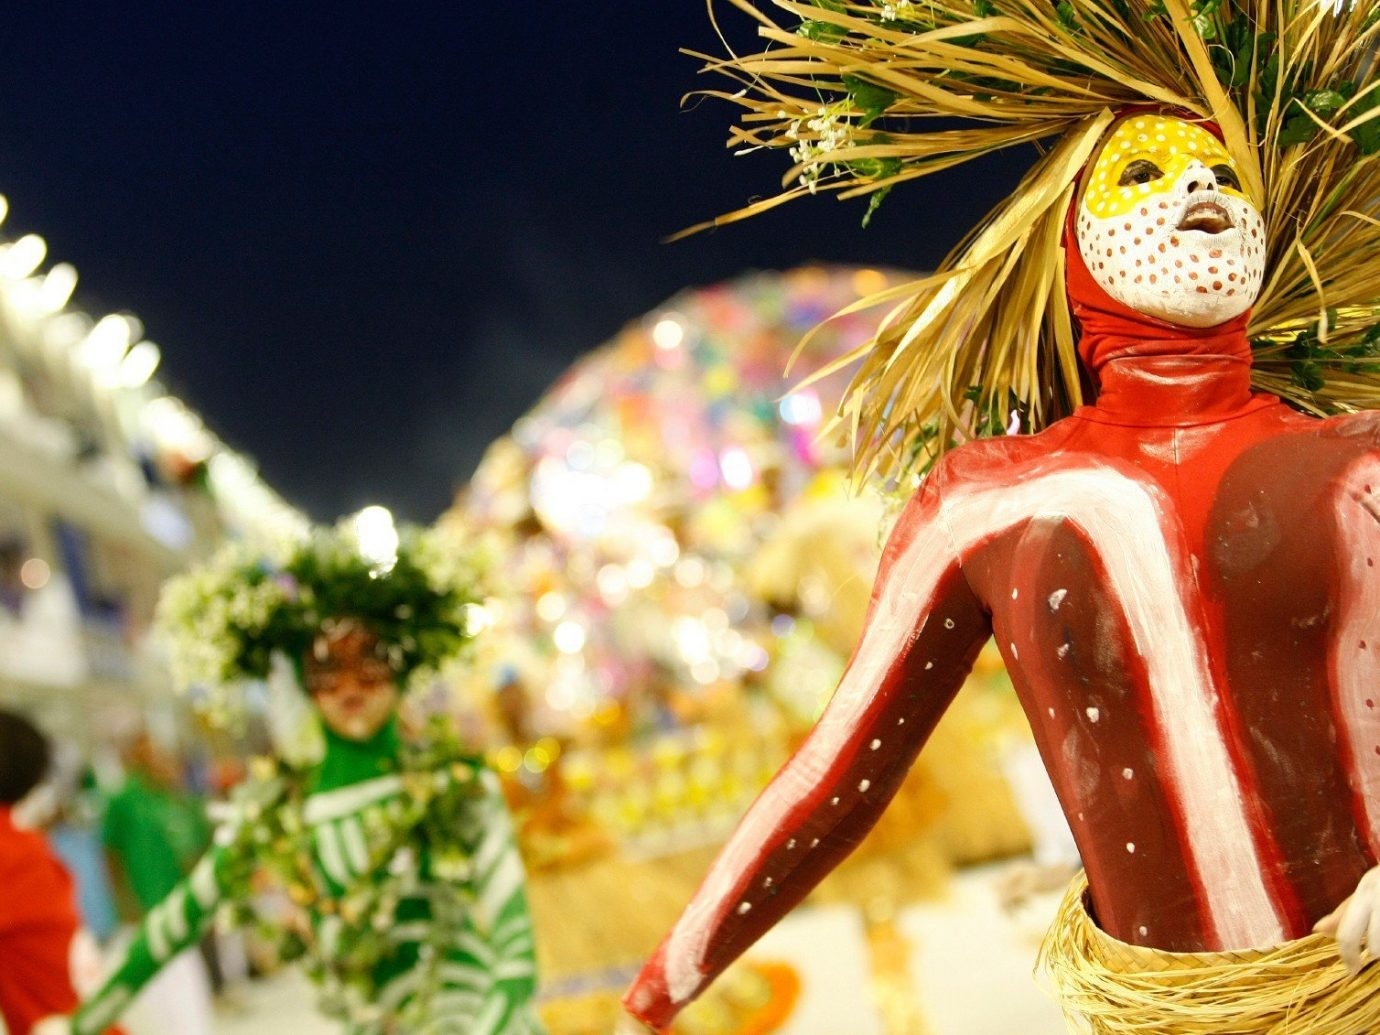 Trip Ideas carnival plant event Christmas festival decorated